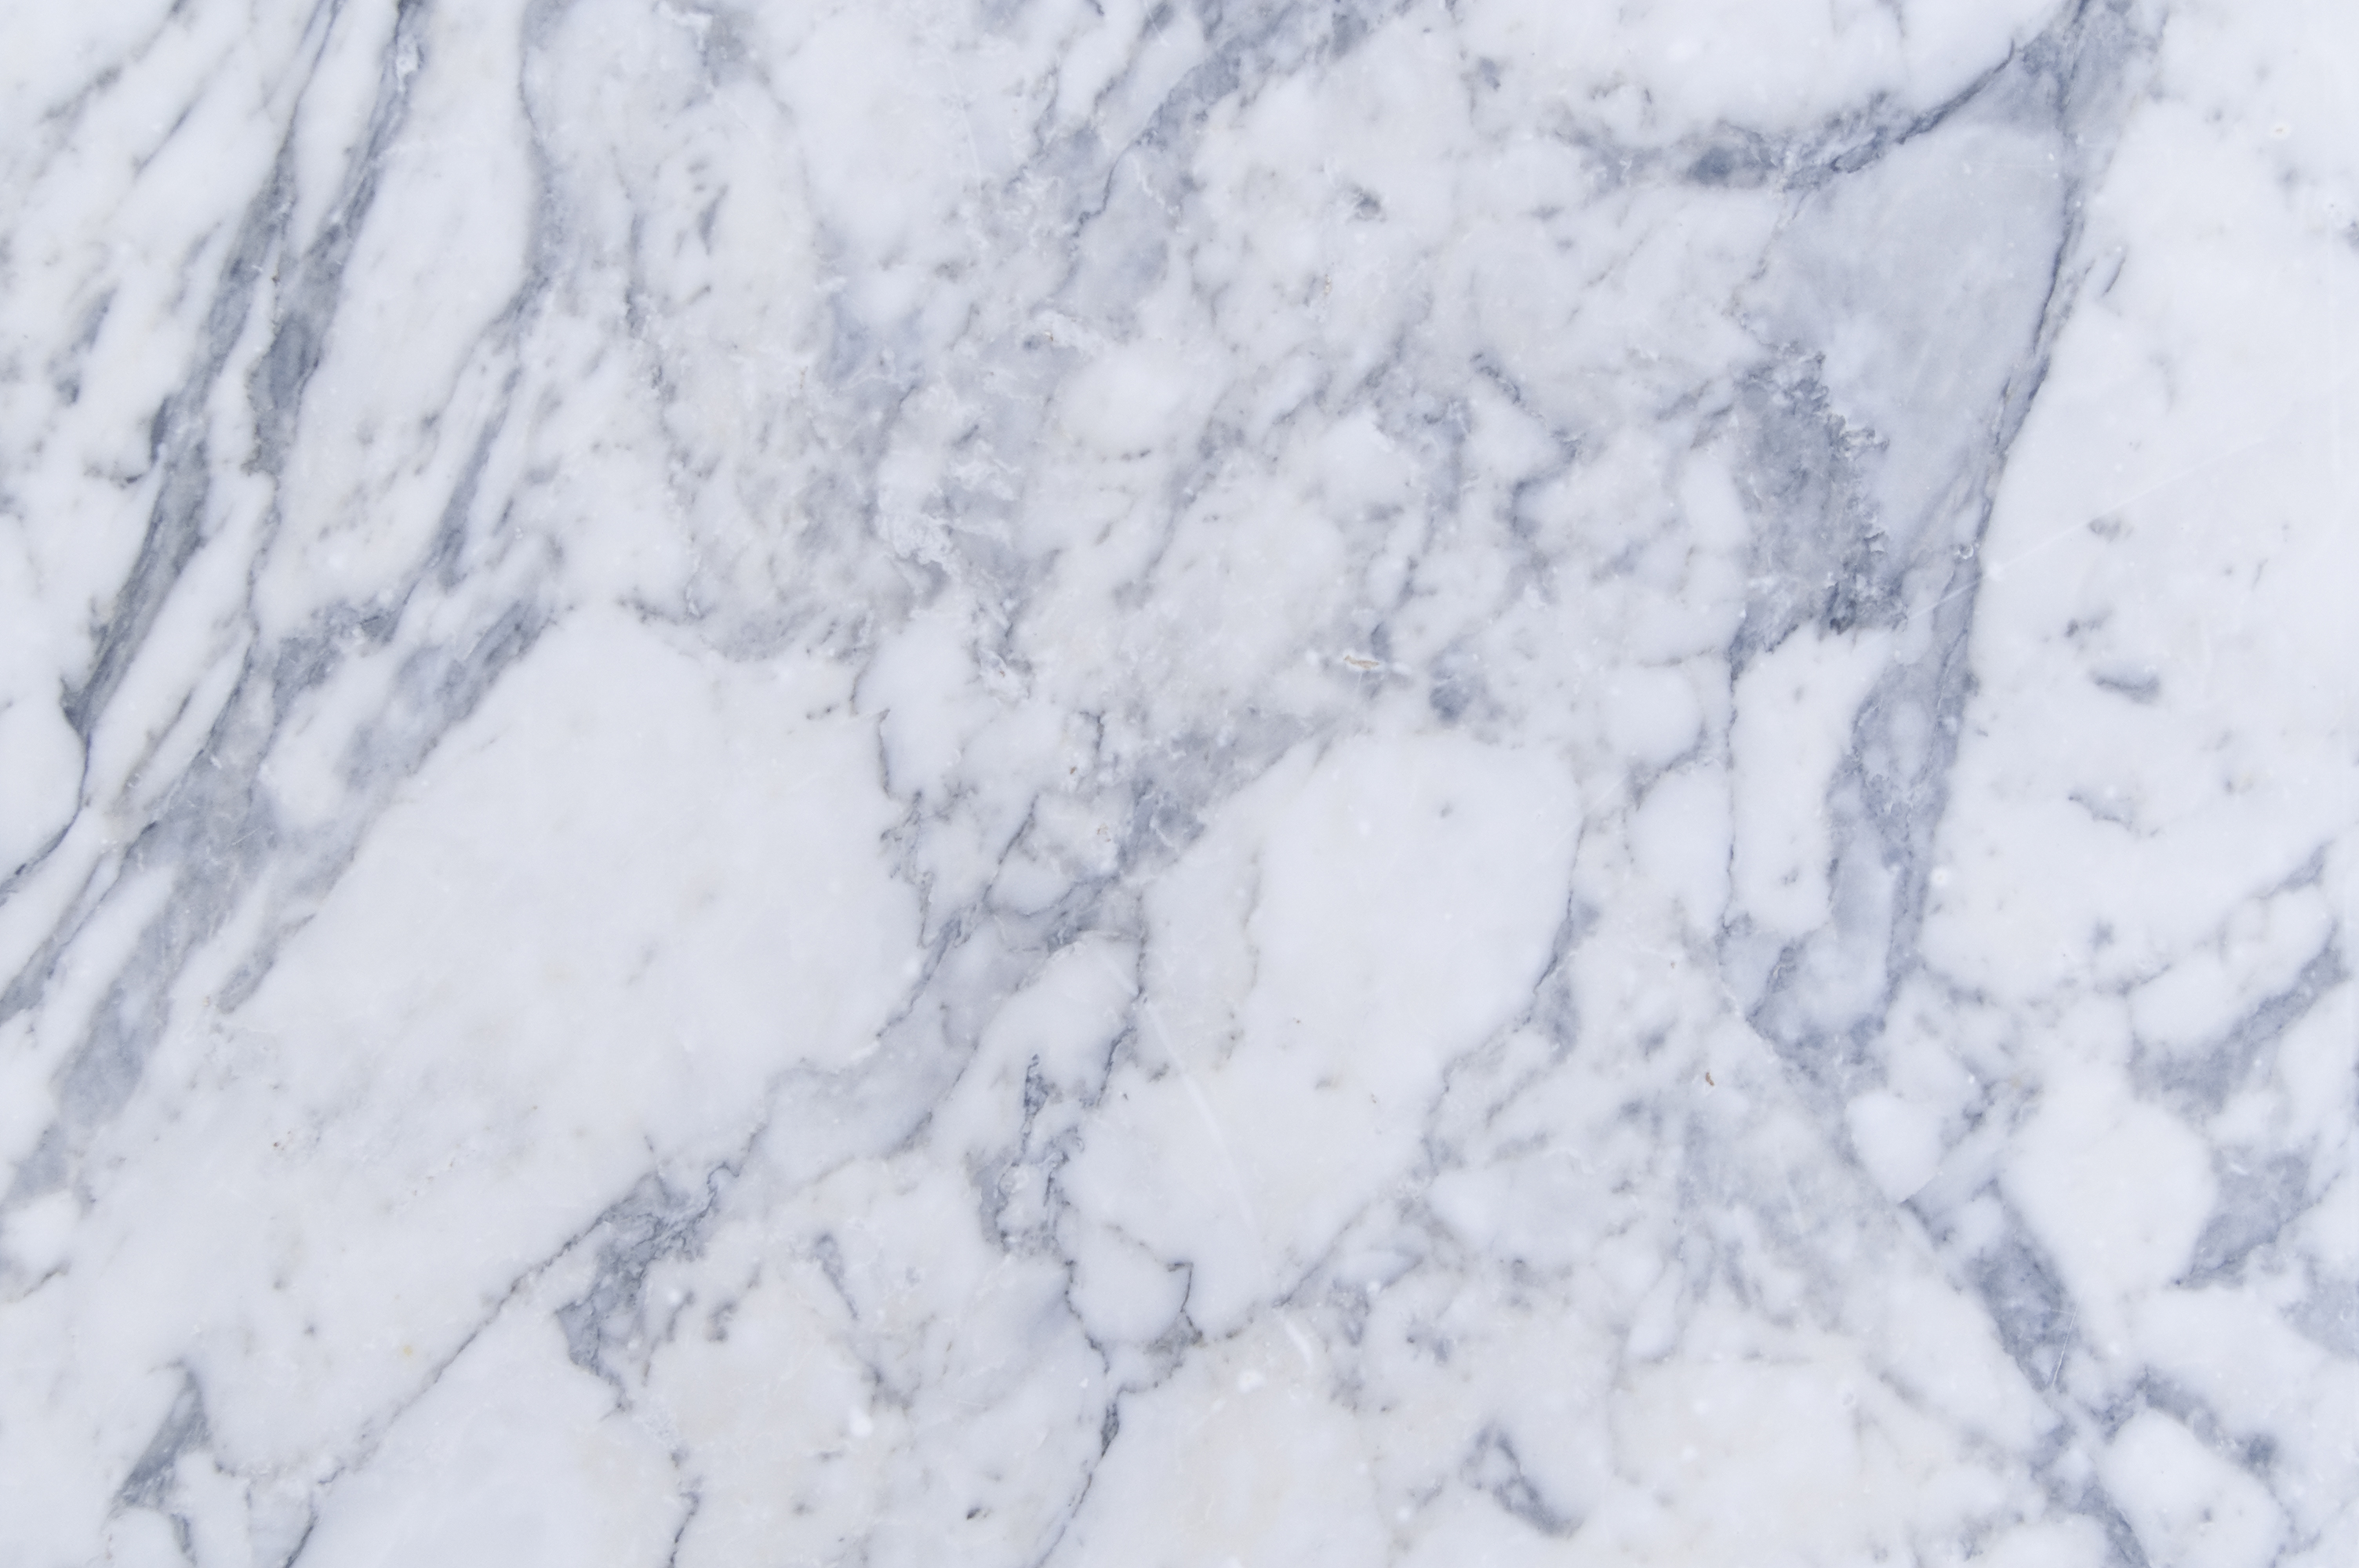 White Marble Tumblr : Am submit